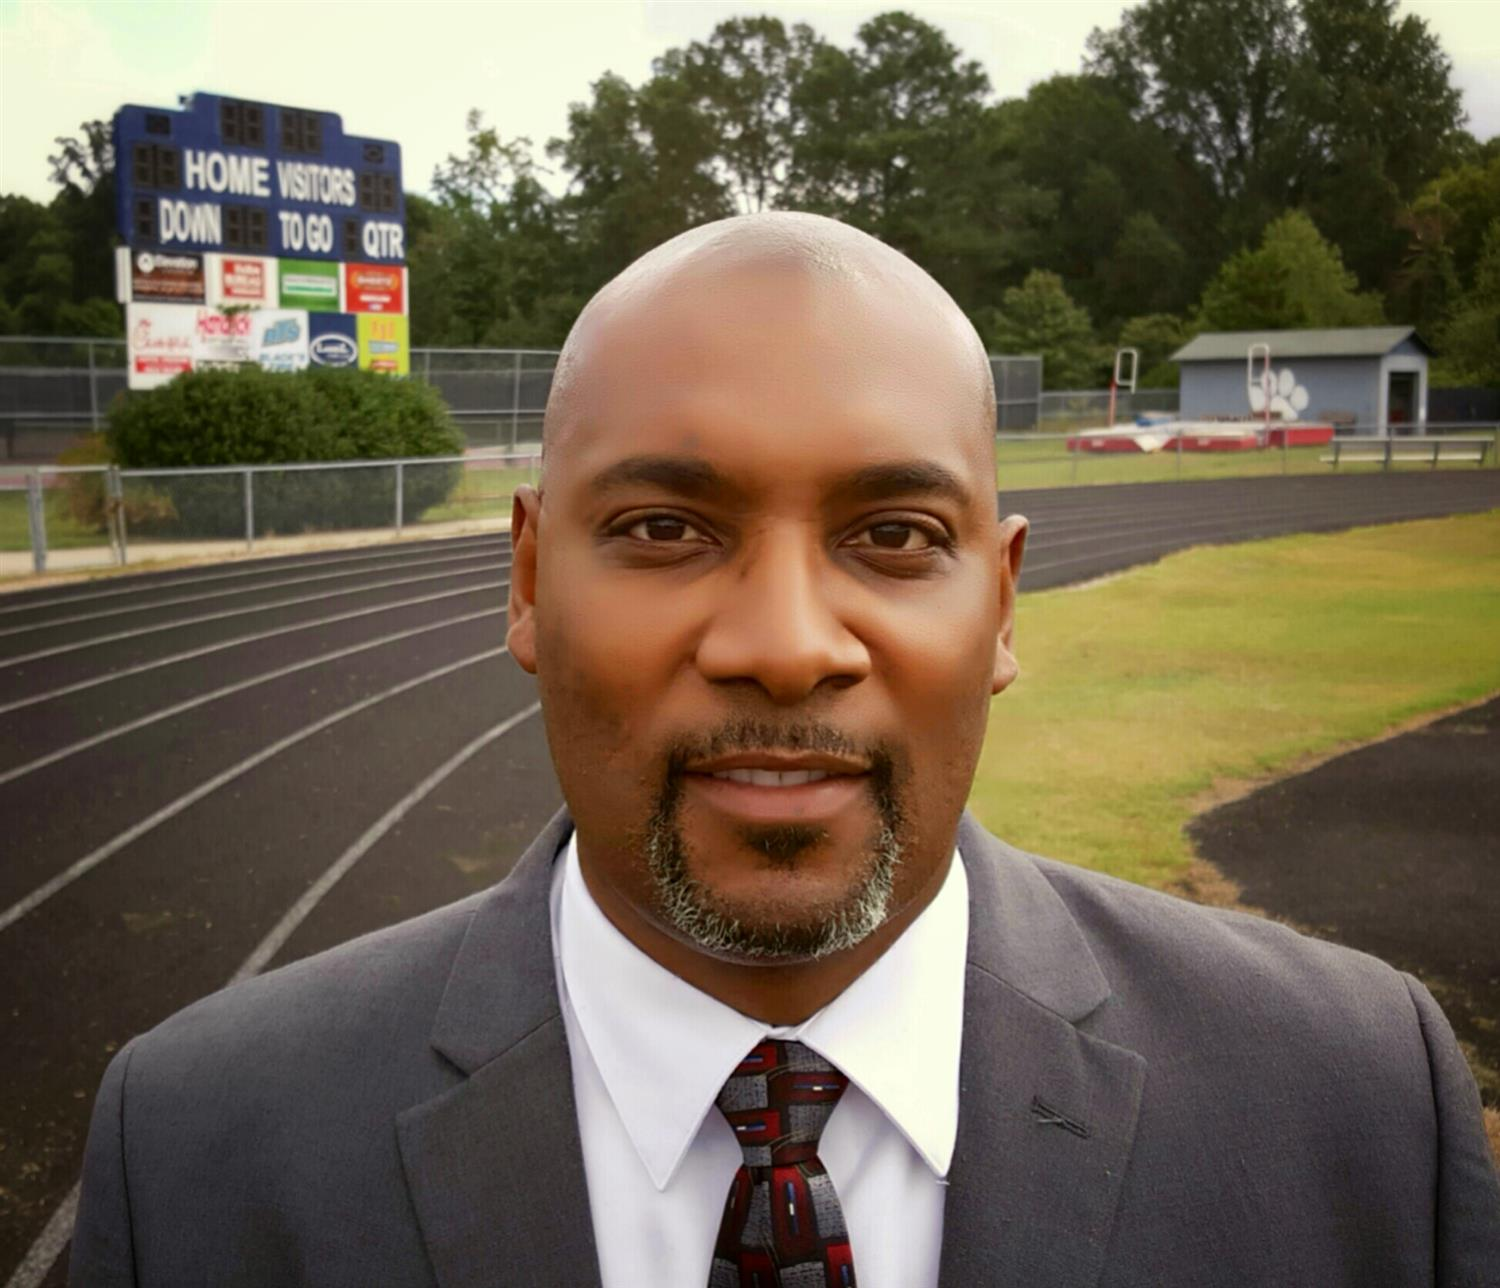 Mr. Duane Flowers - Assistant Principal